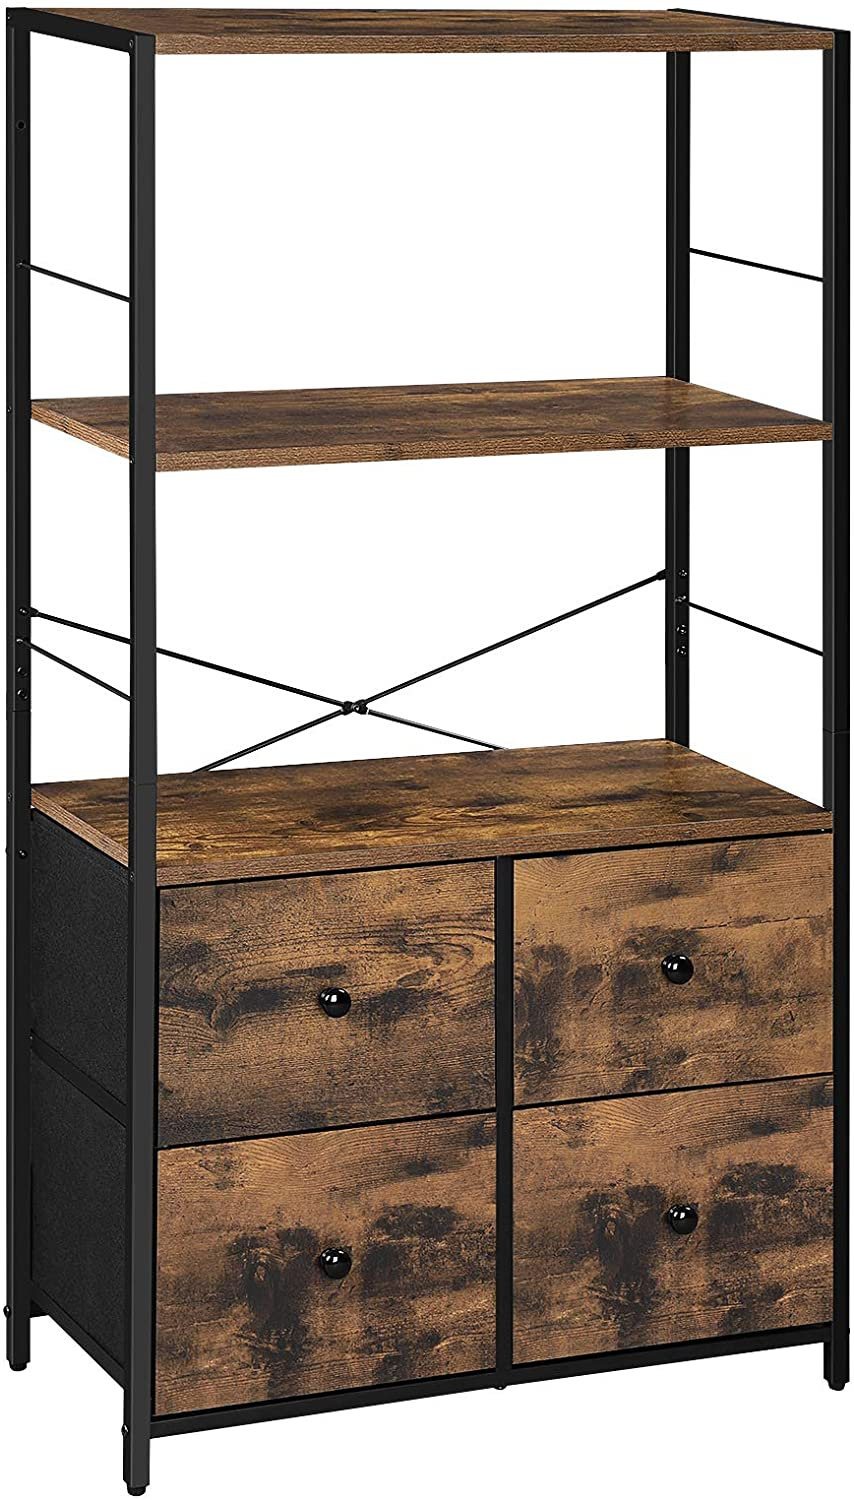 New product type SONGMICS Rustic Storage Cabinet Rack Shelves and Special price for a limited time F with